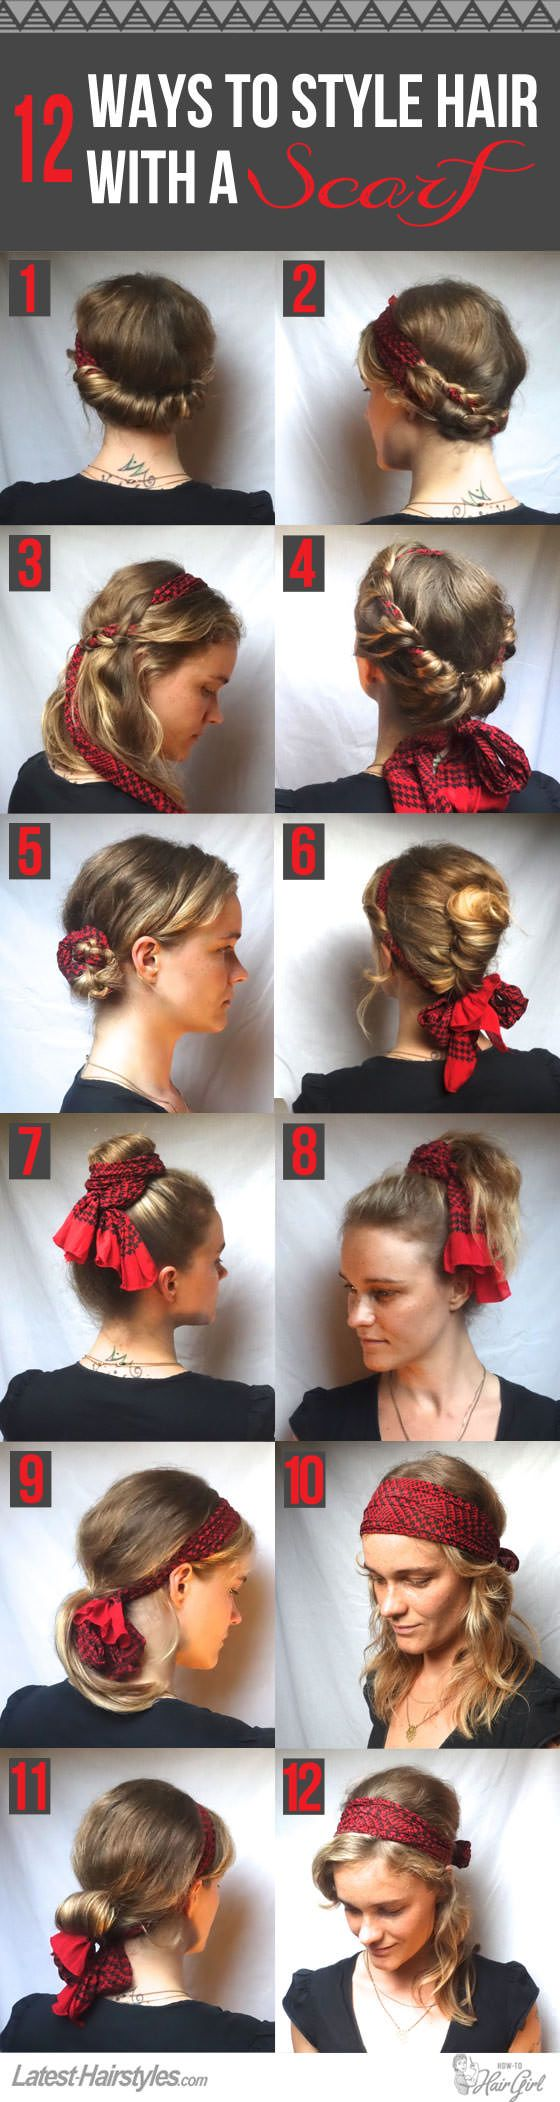 12 Incredibly Chic Ways to Style Hair With a Scarf (Follow the link for detailed tutorials for each look!)